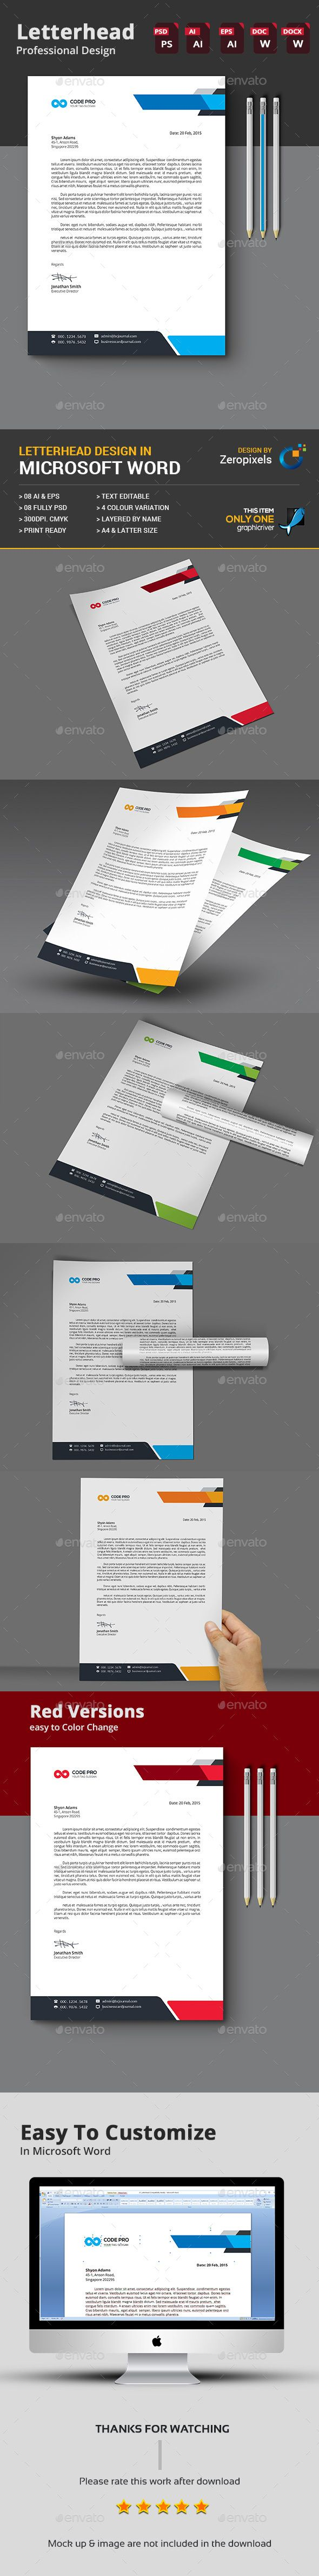 99 best letterhead images on pinterest design patterns design letterhead design template psd vector eps ai illustrator ms word spiritdancerdesigns Image collections